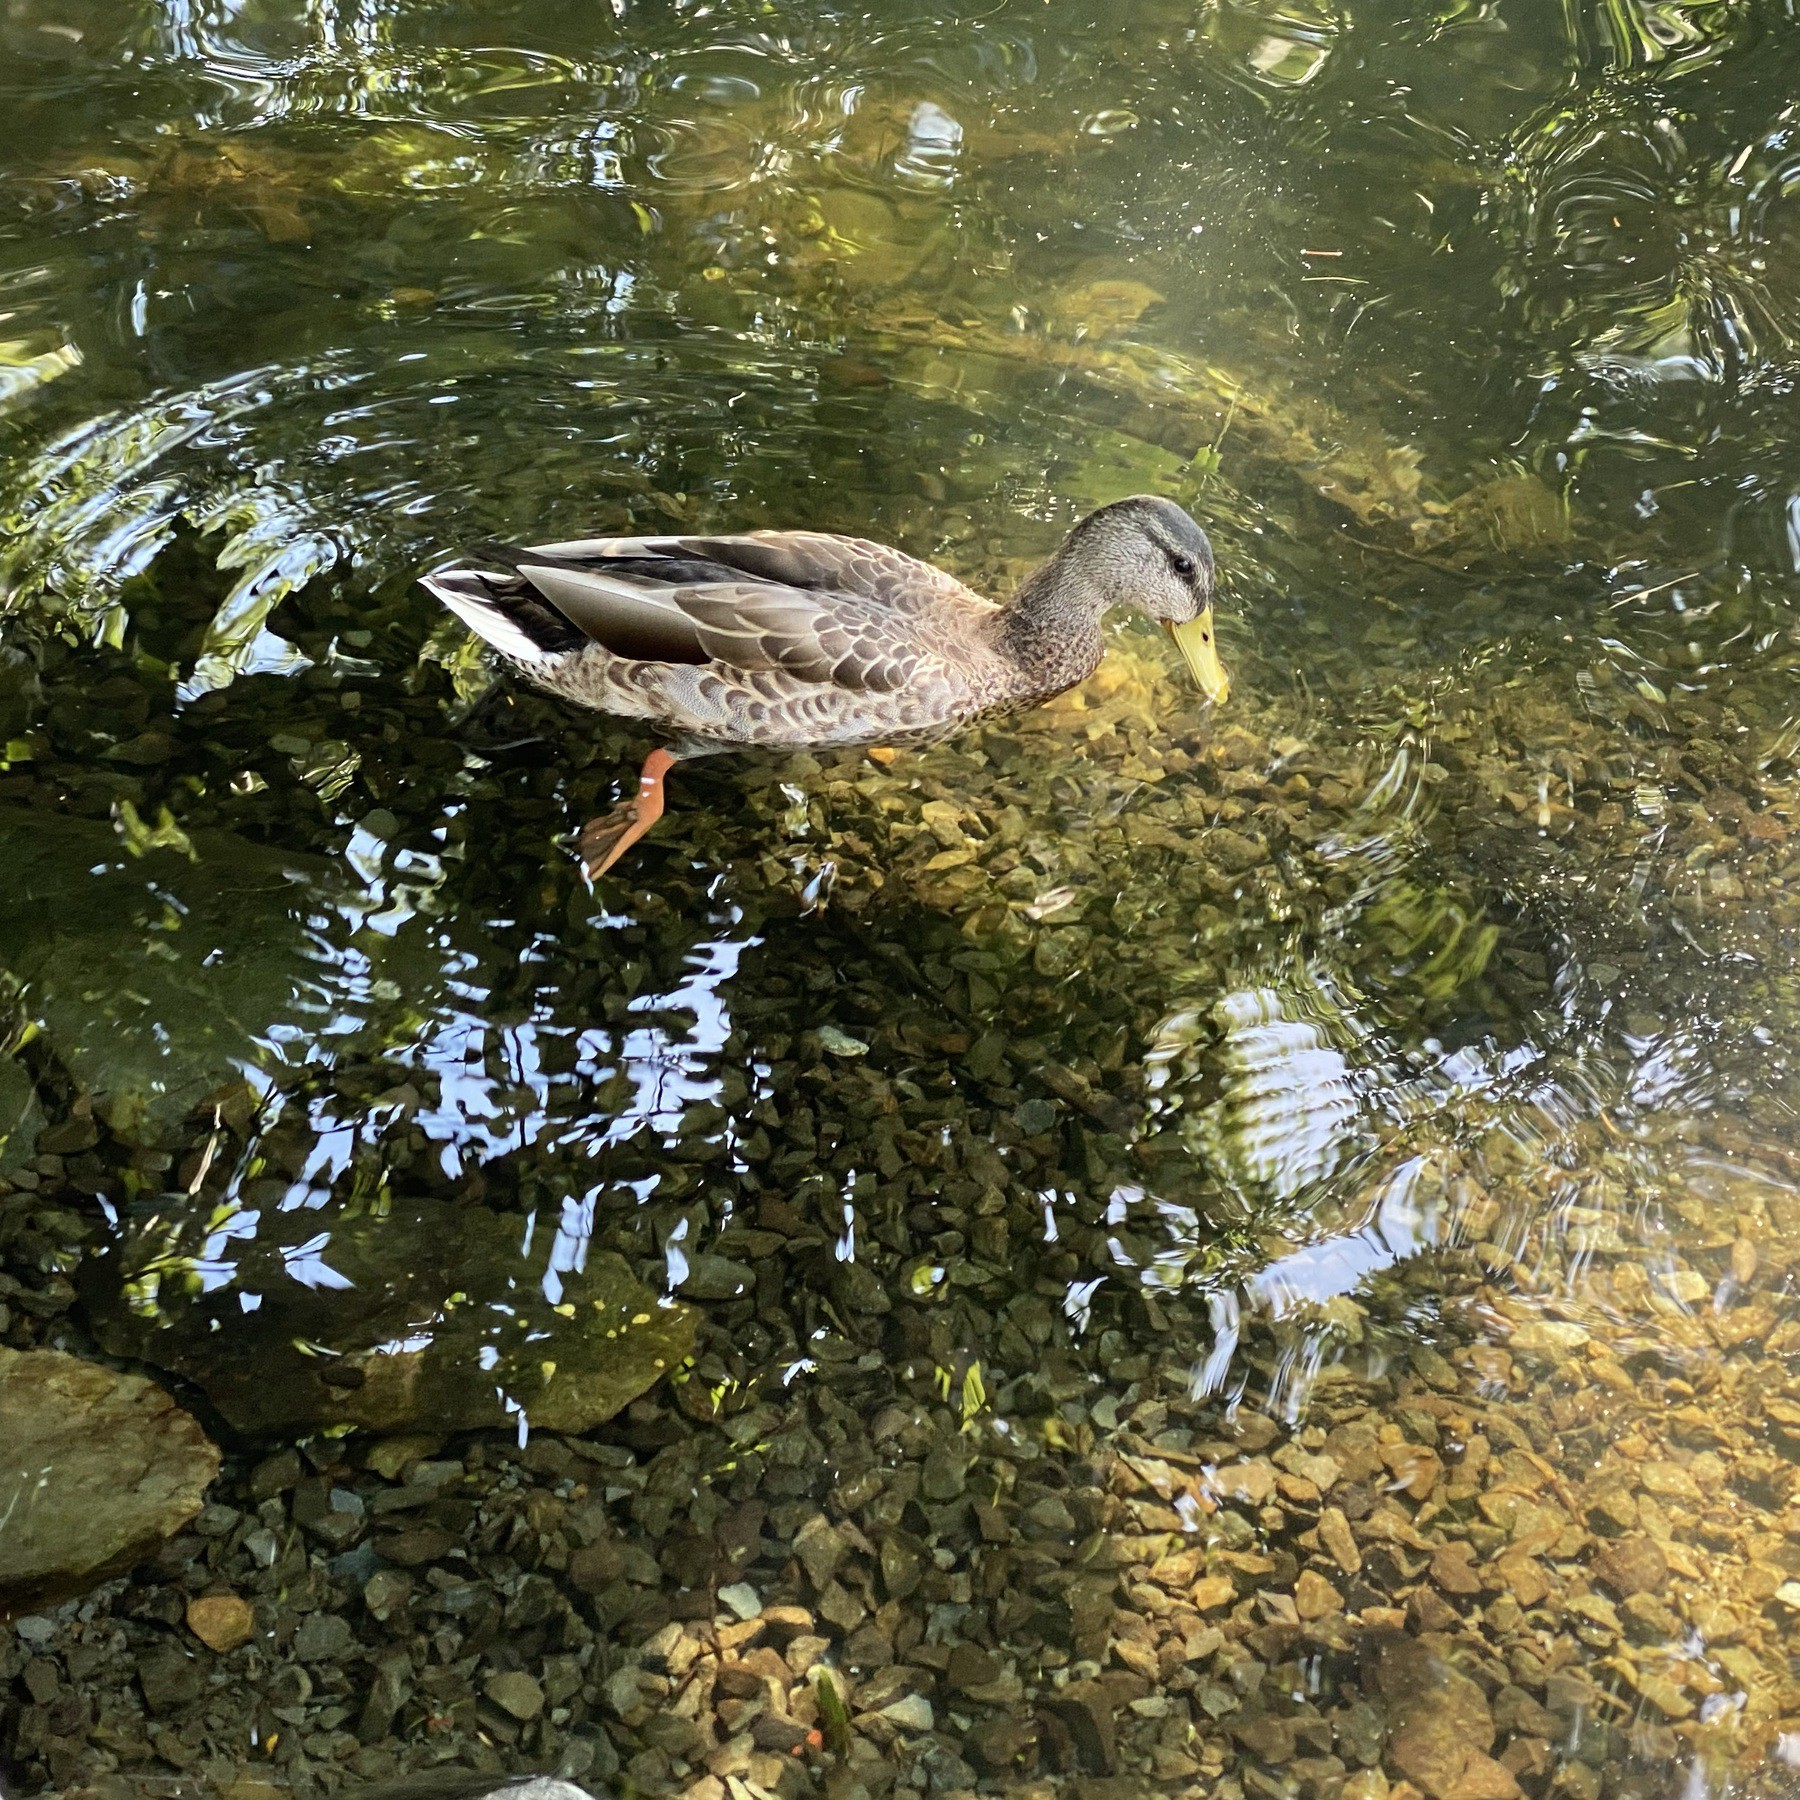 Duck floating in water.